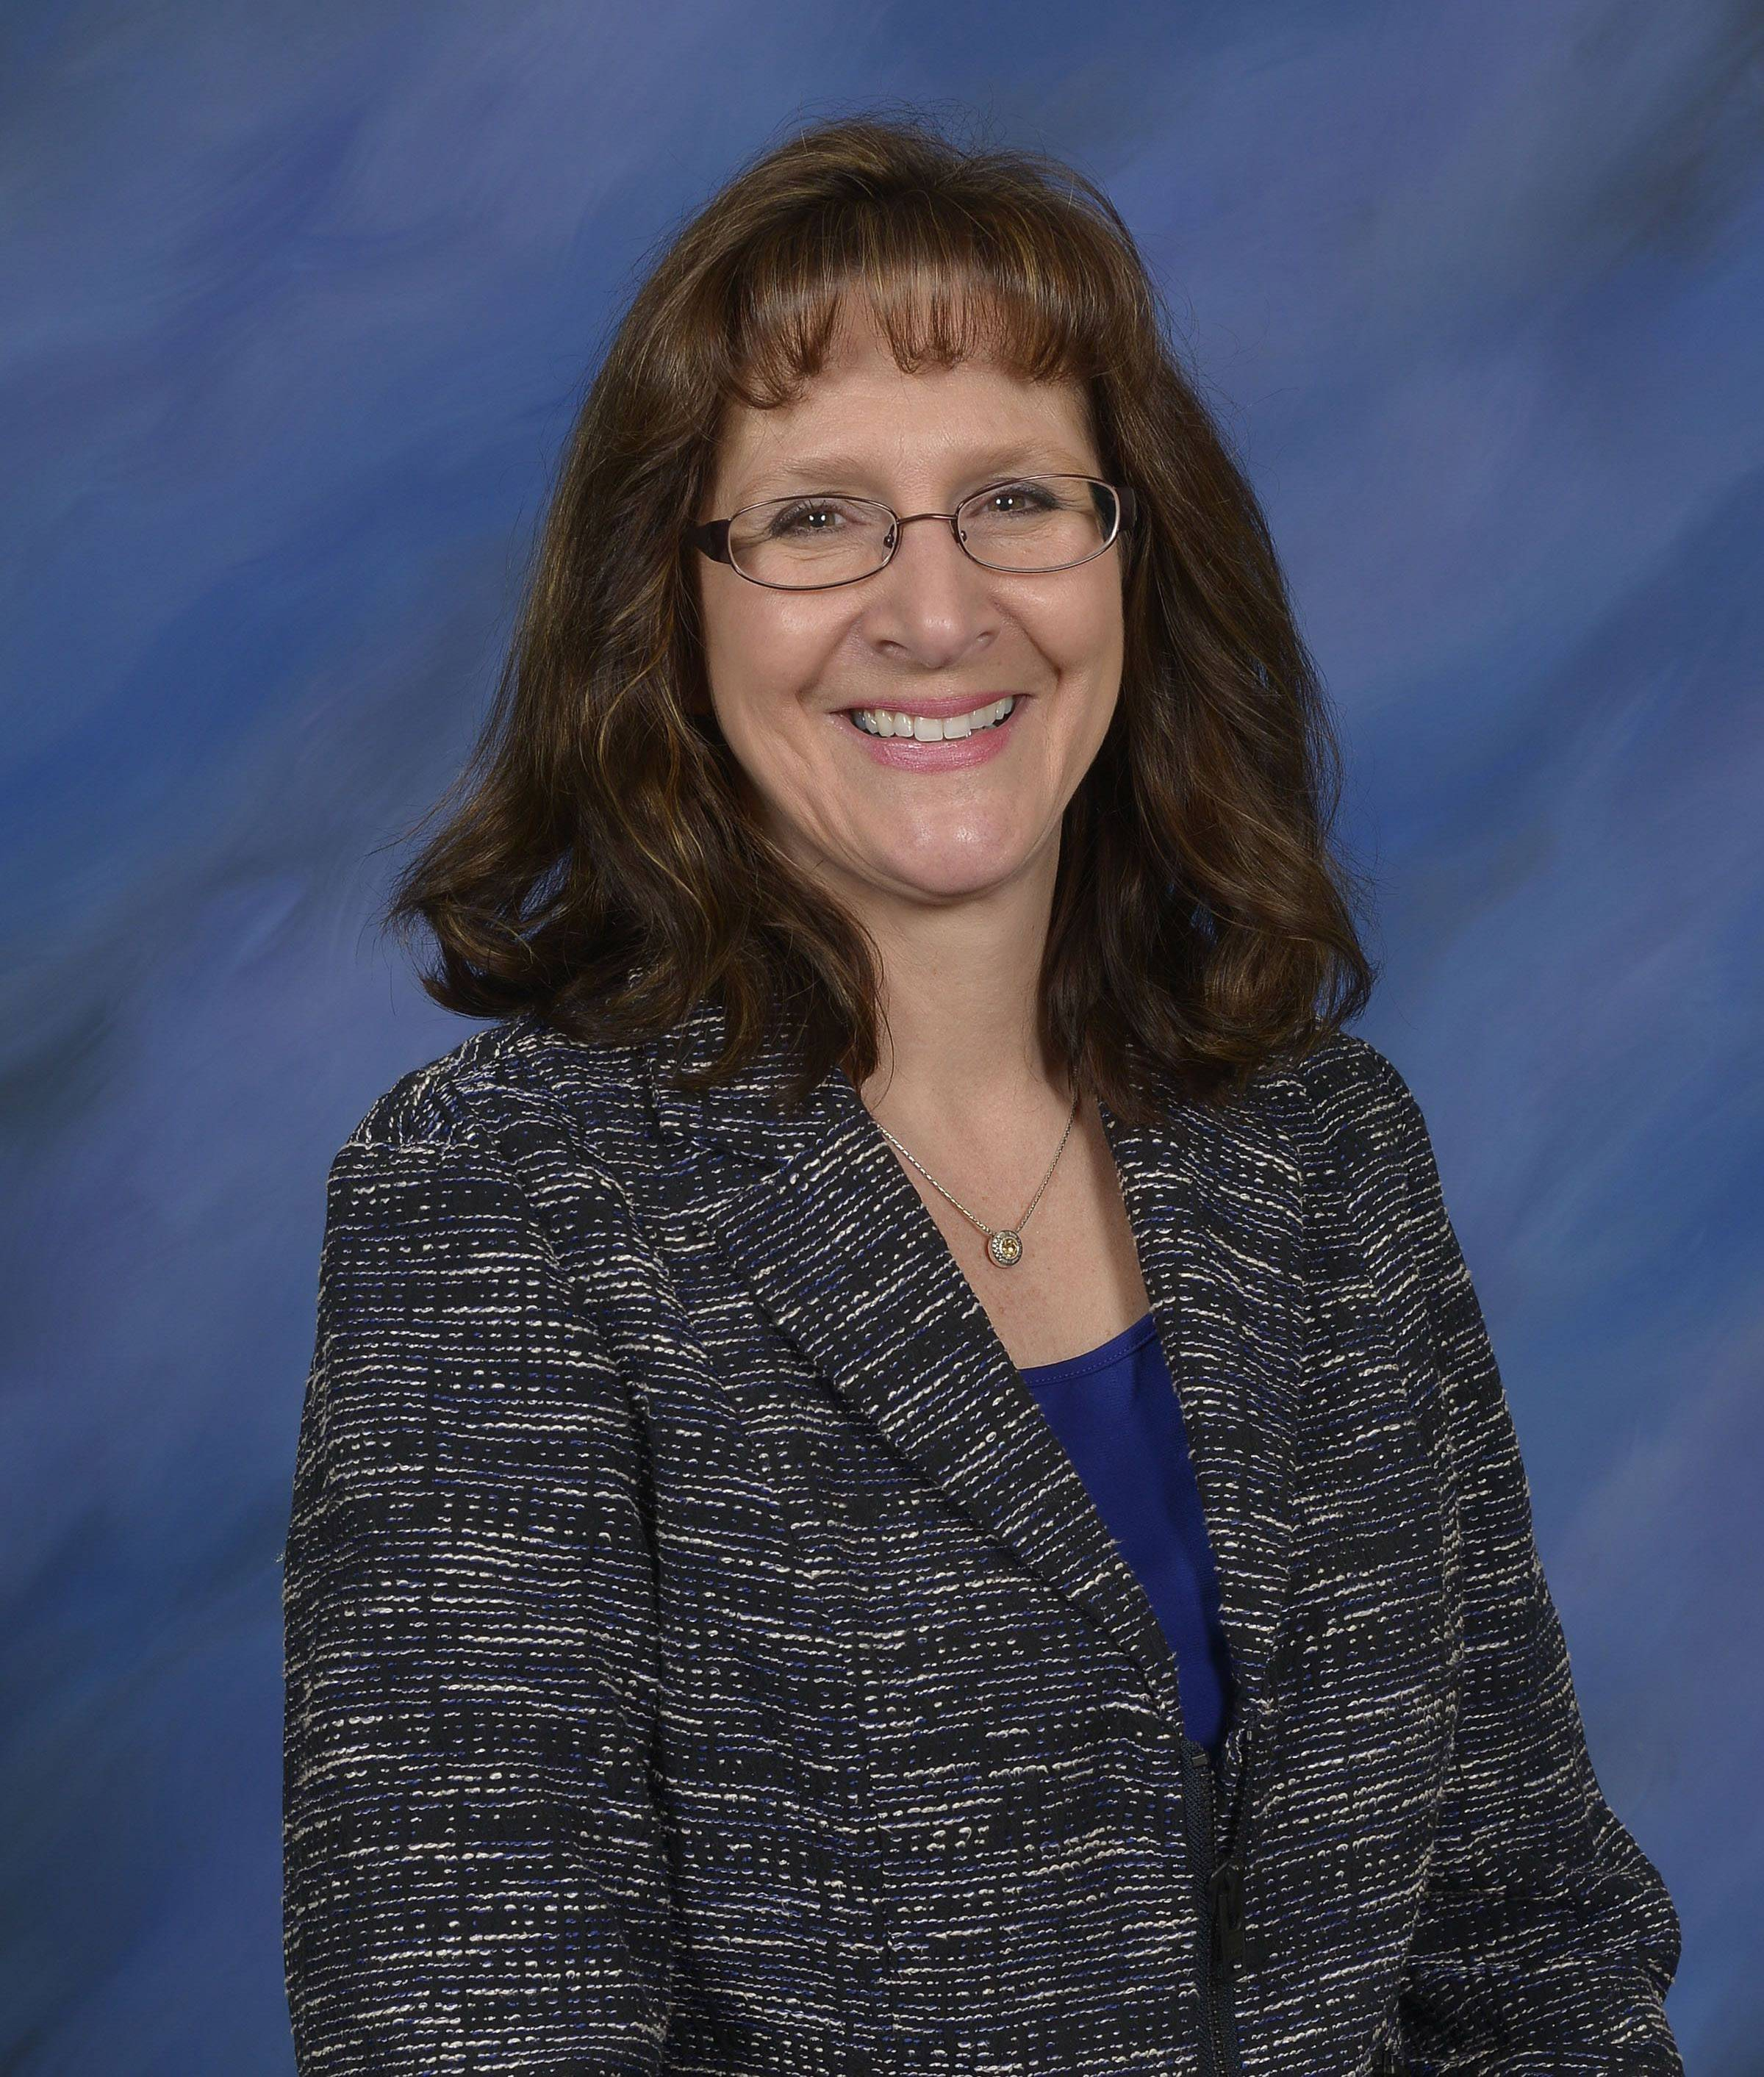 Fremont School District 79 Superintendent Jill Gildea is leaving for a job in Connecticut.